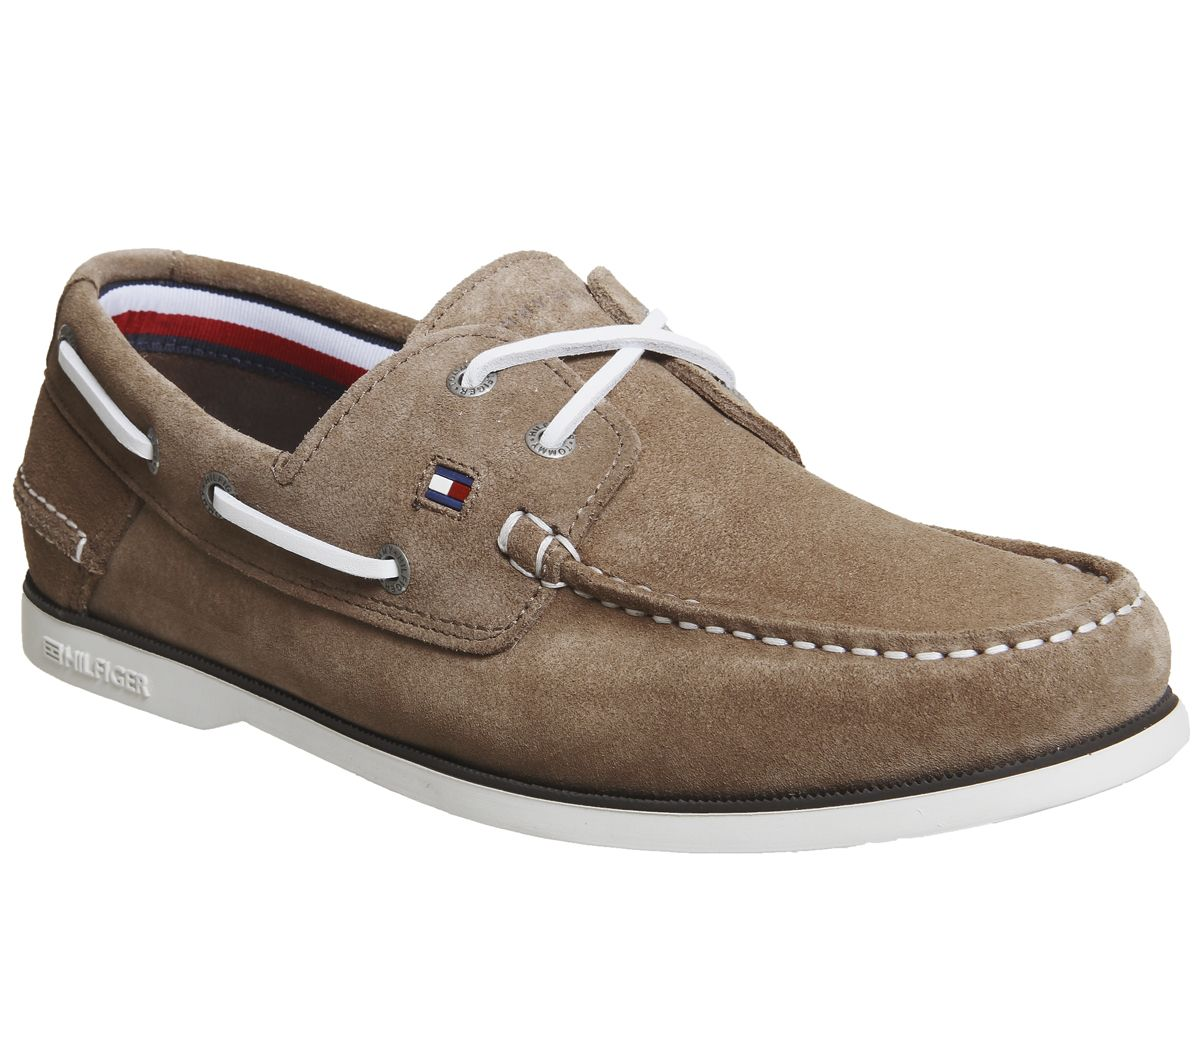 556a0114e542 Tommy Hilfiger Classic Boat Shoes Taupe Suede - His trainers